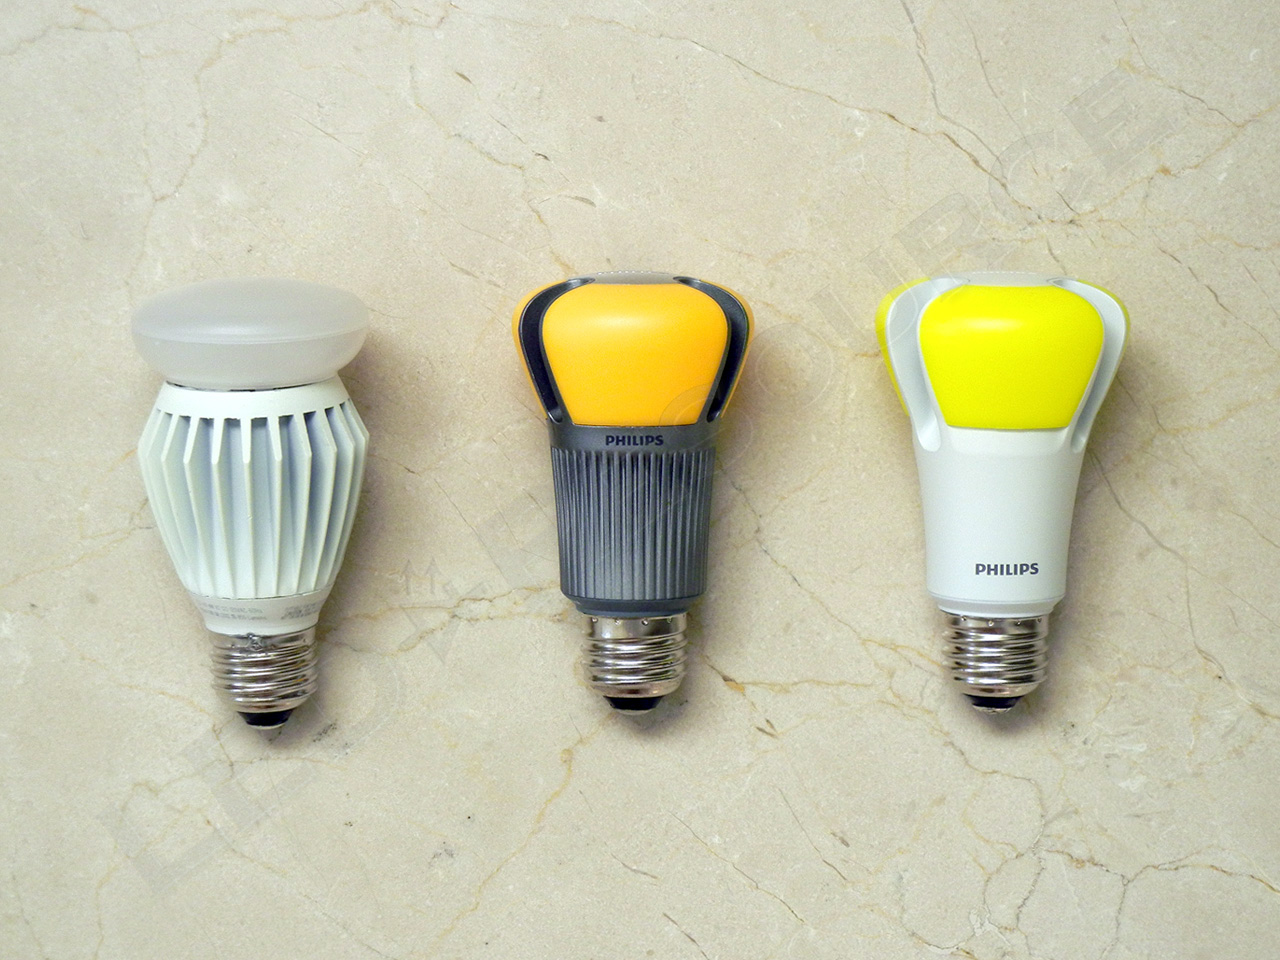 Philips L-Prize Award Winning LED Bulb Review